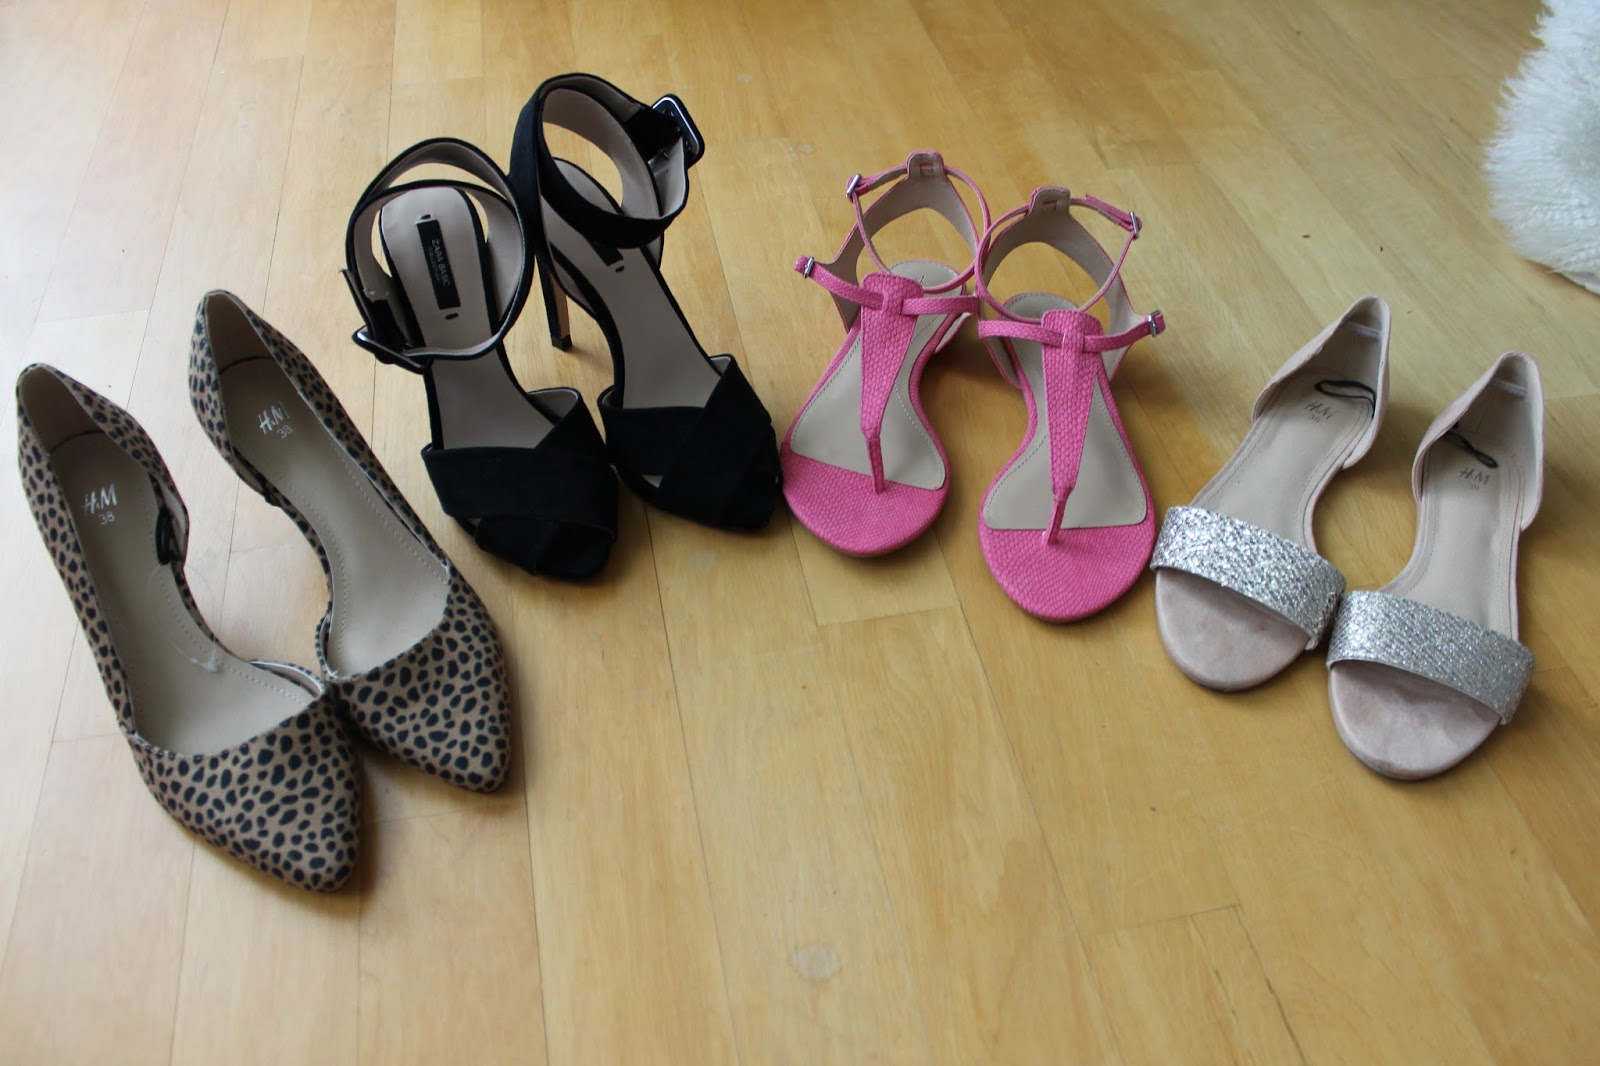 New in Shopping H&M Zara shoes flats heels animal print